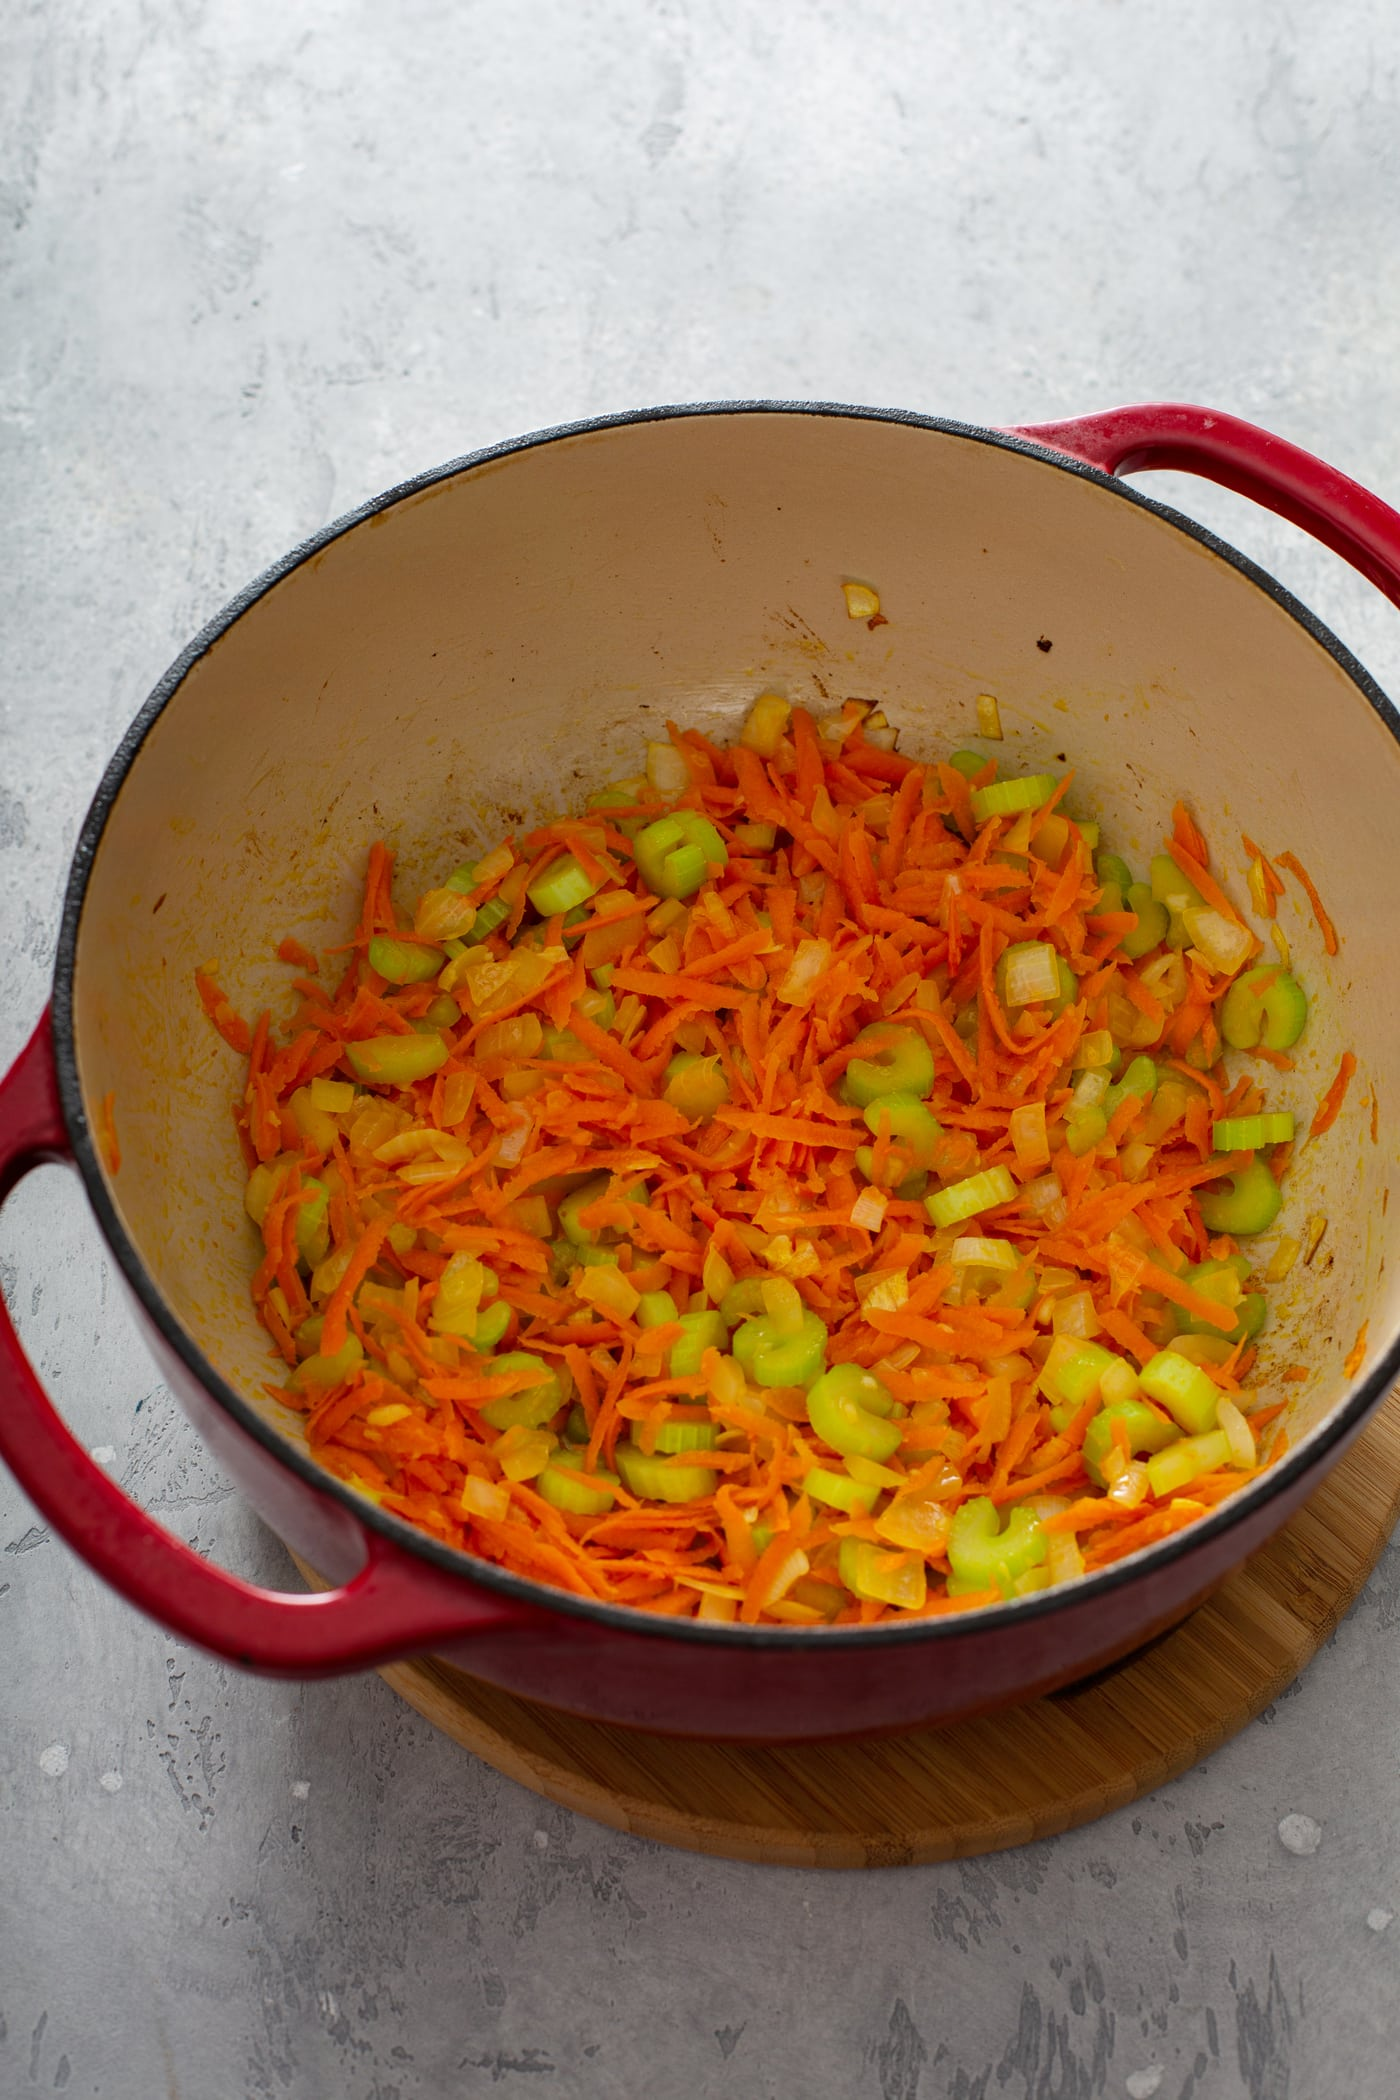 A red soup pot with bright orange shredded carrots and sliced green celery.